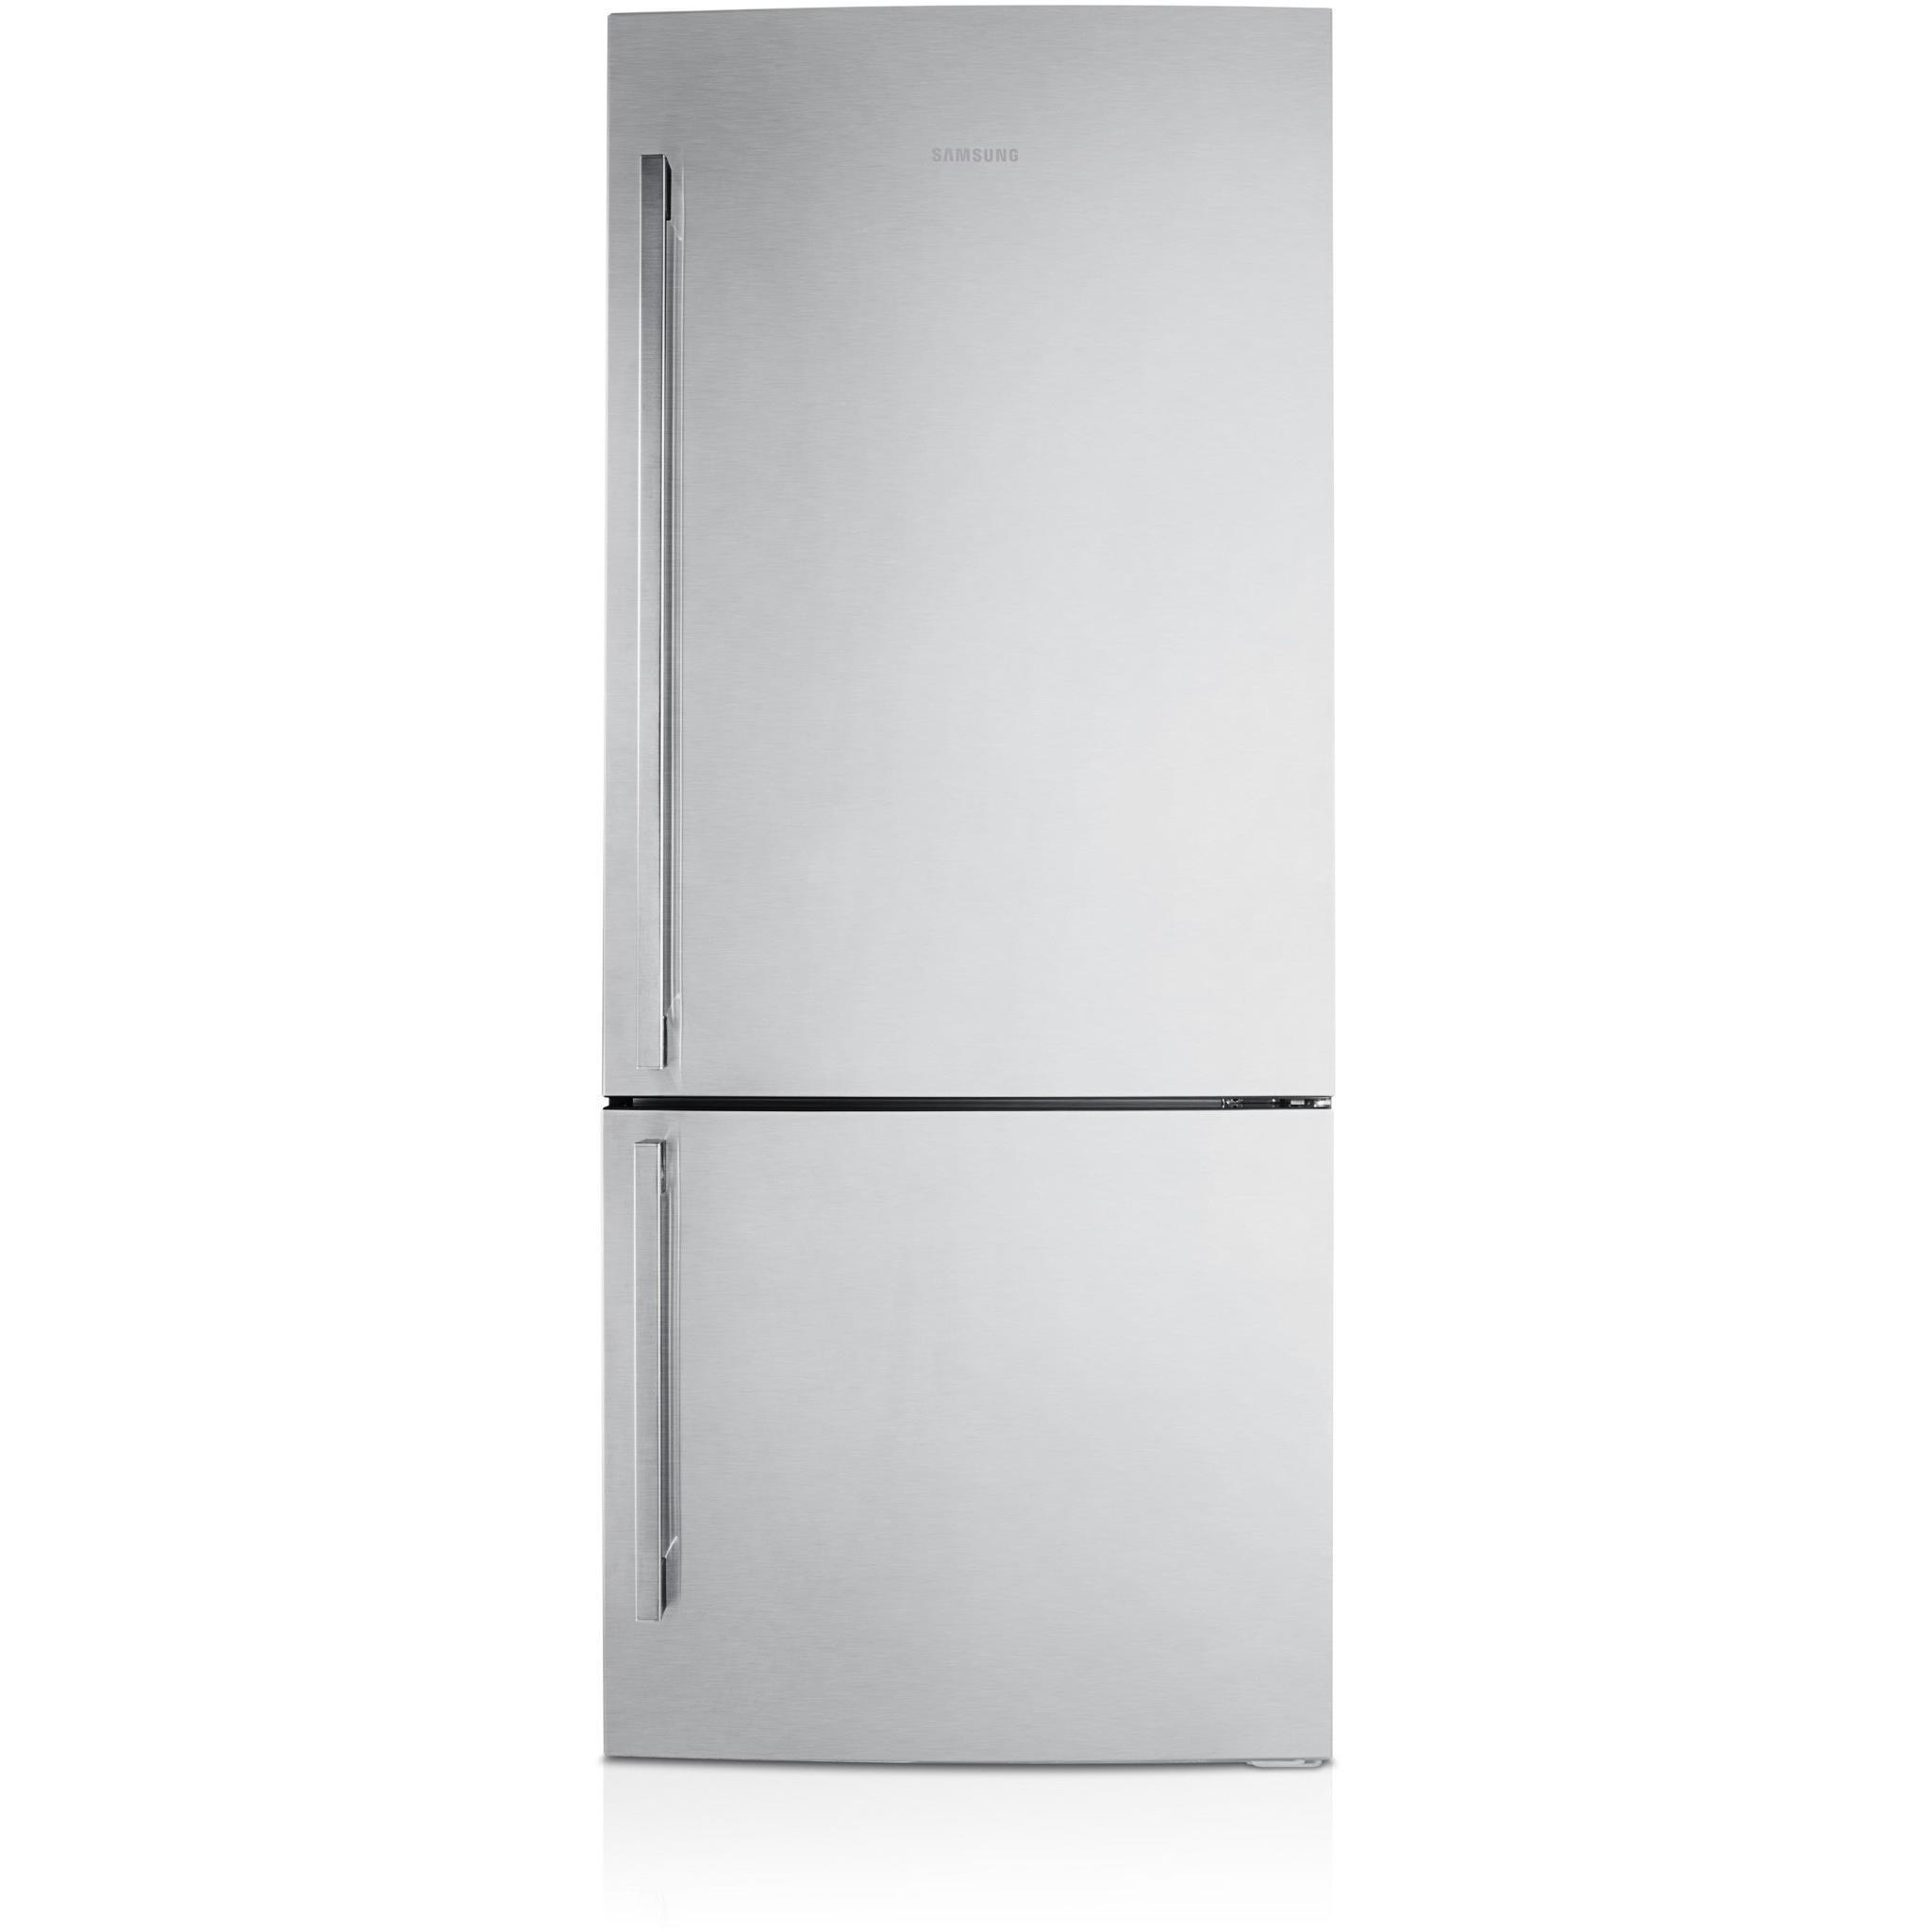 Samsung SRL458ELS 458L Bottom Mount Fridge (S/Steel)